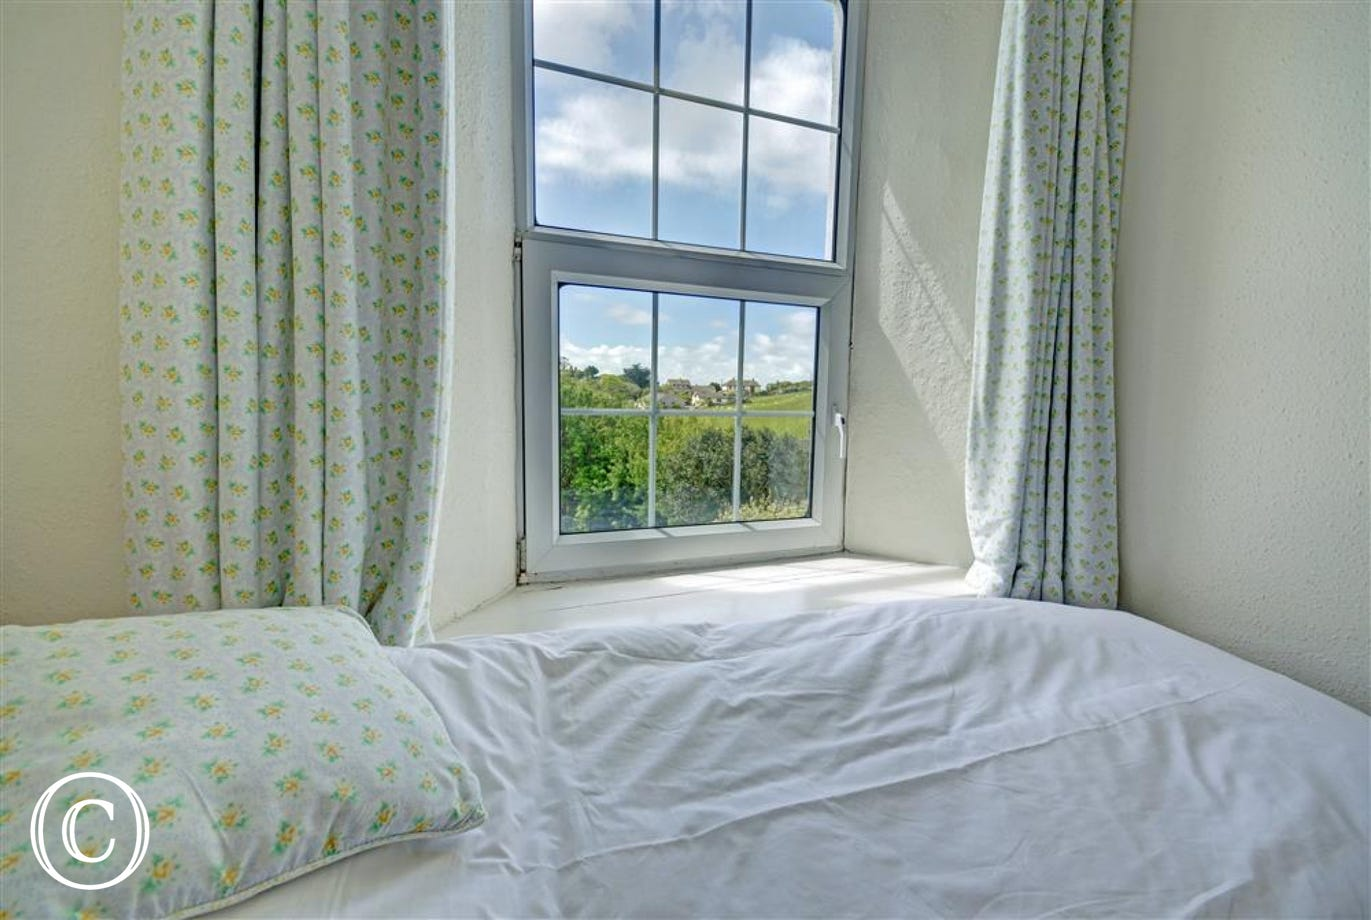 View from twin bedded room